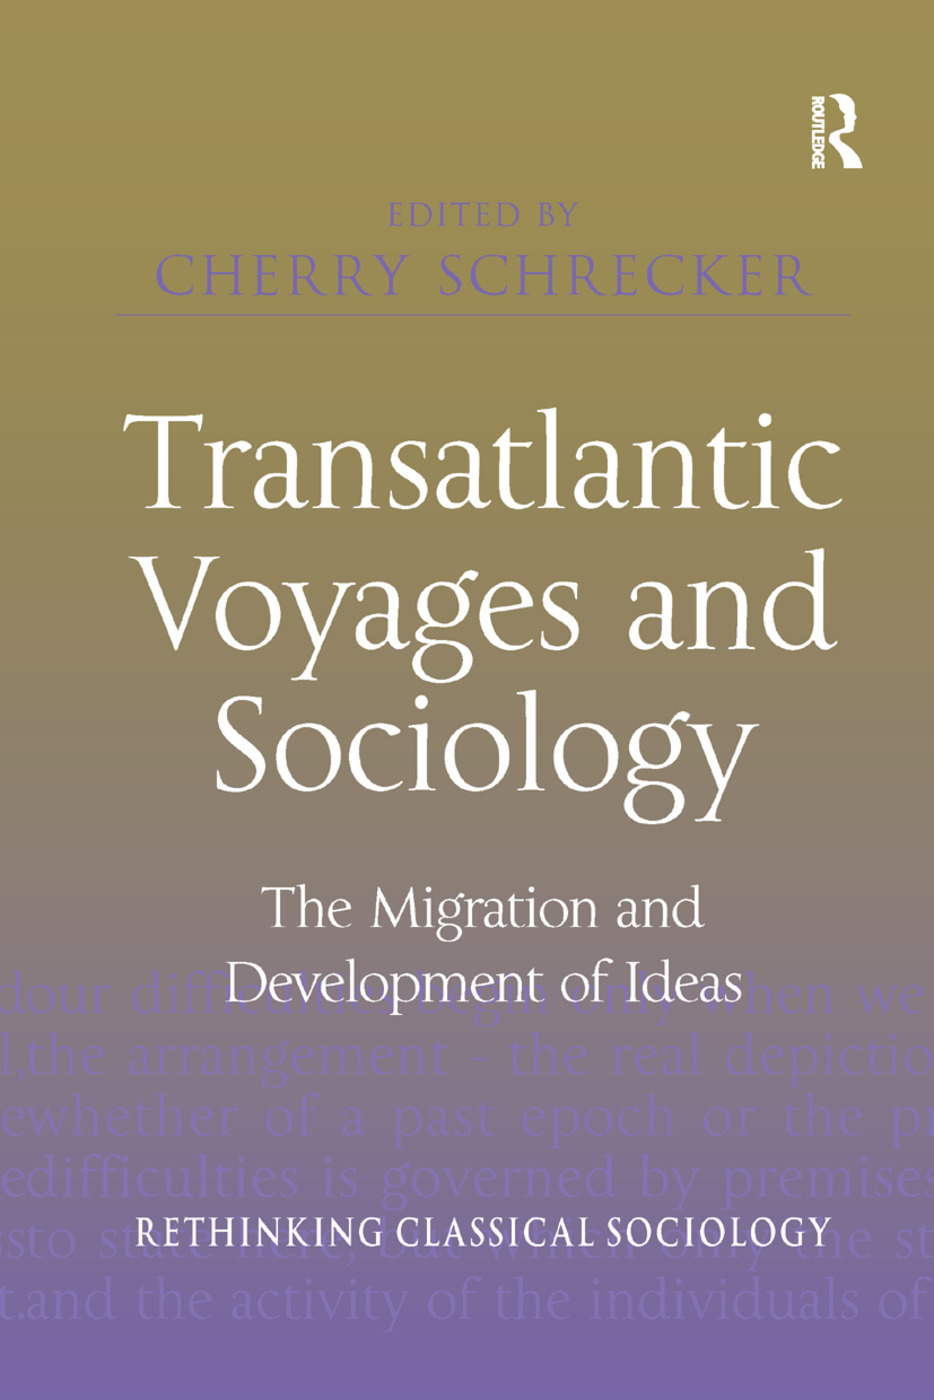 Transatlantic Voyages and Sociology